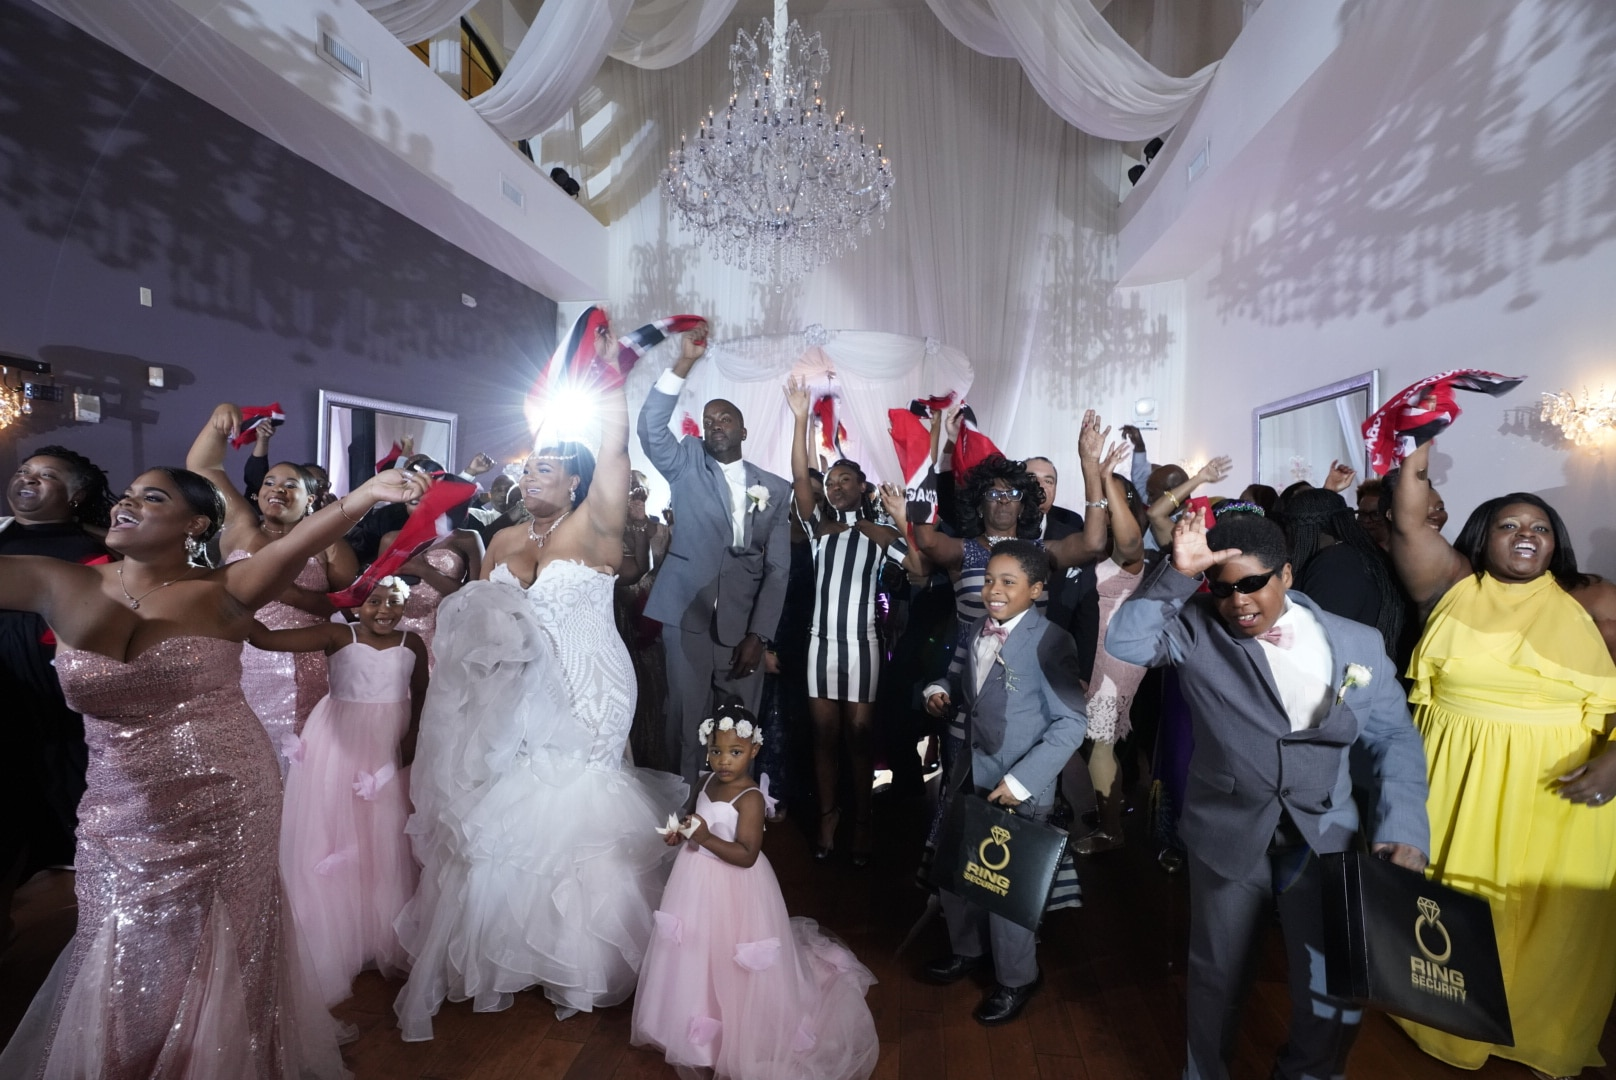 DJ Danny Garcia - guest filled dance floor with swag gifts